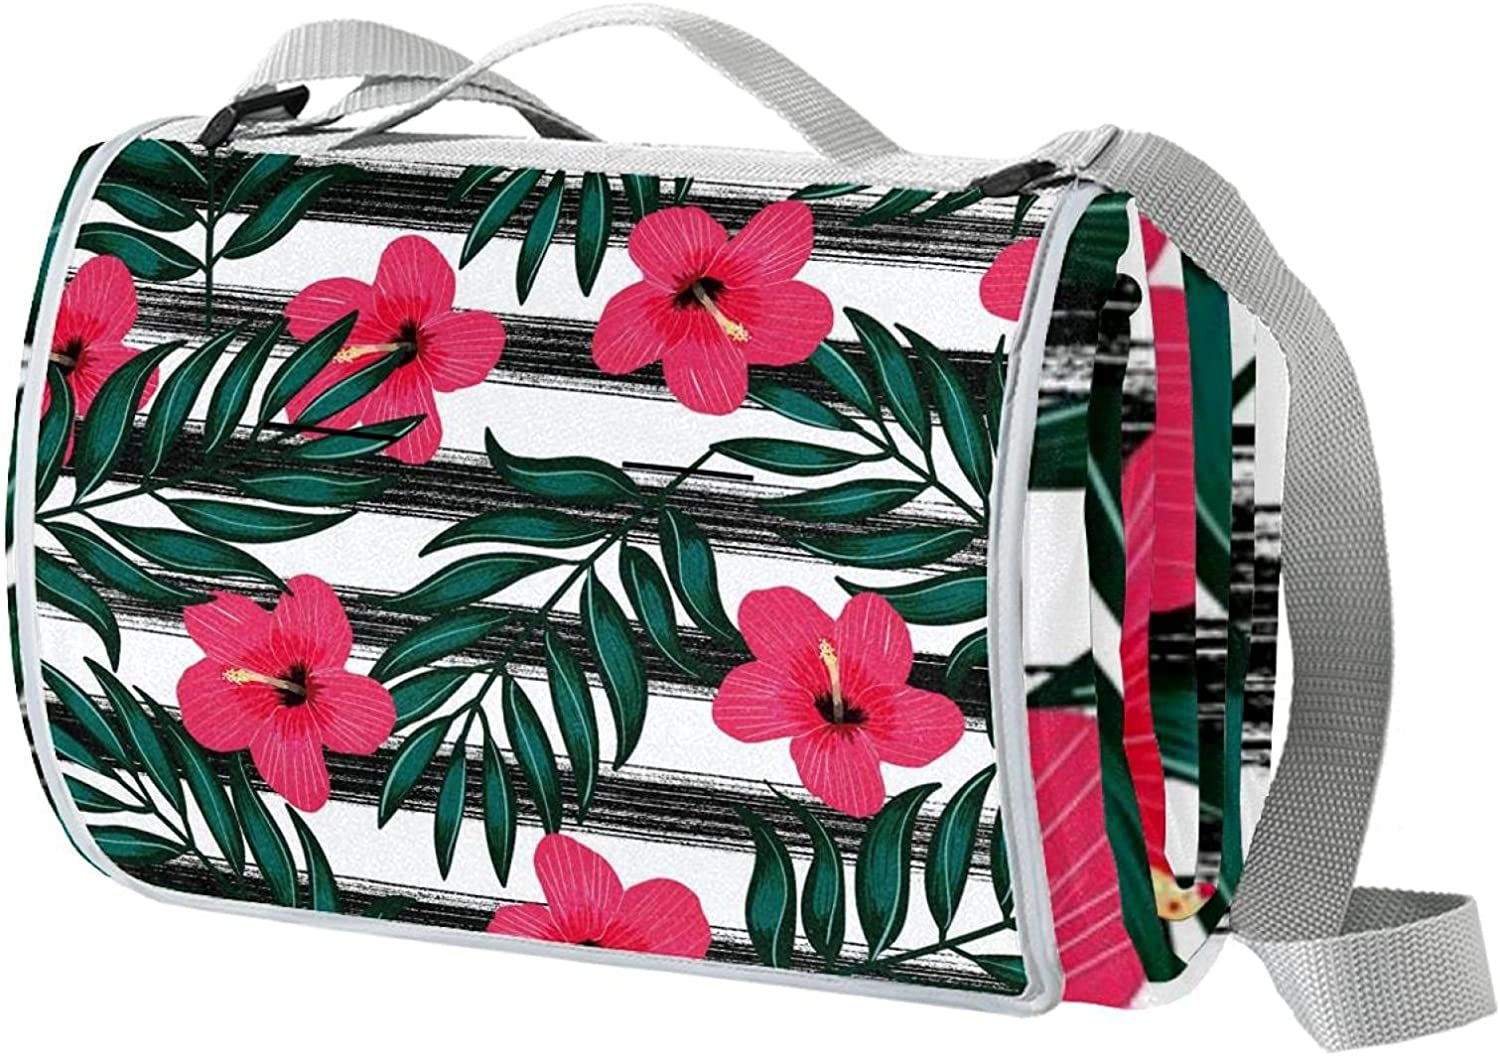 Tropical Leaves Red Direct sale of manufacturer Flowers Black Max 81% OFF Large Picnic B Stripes Outdoor